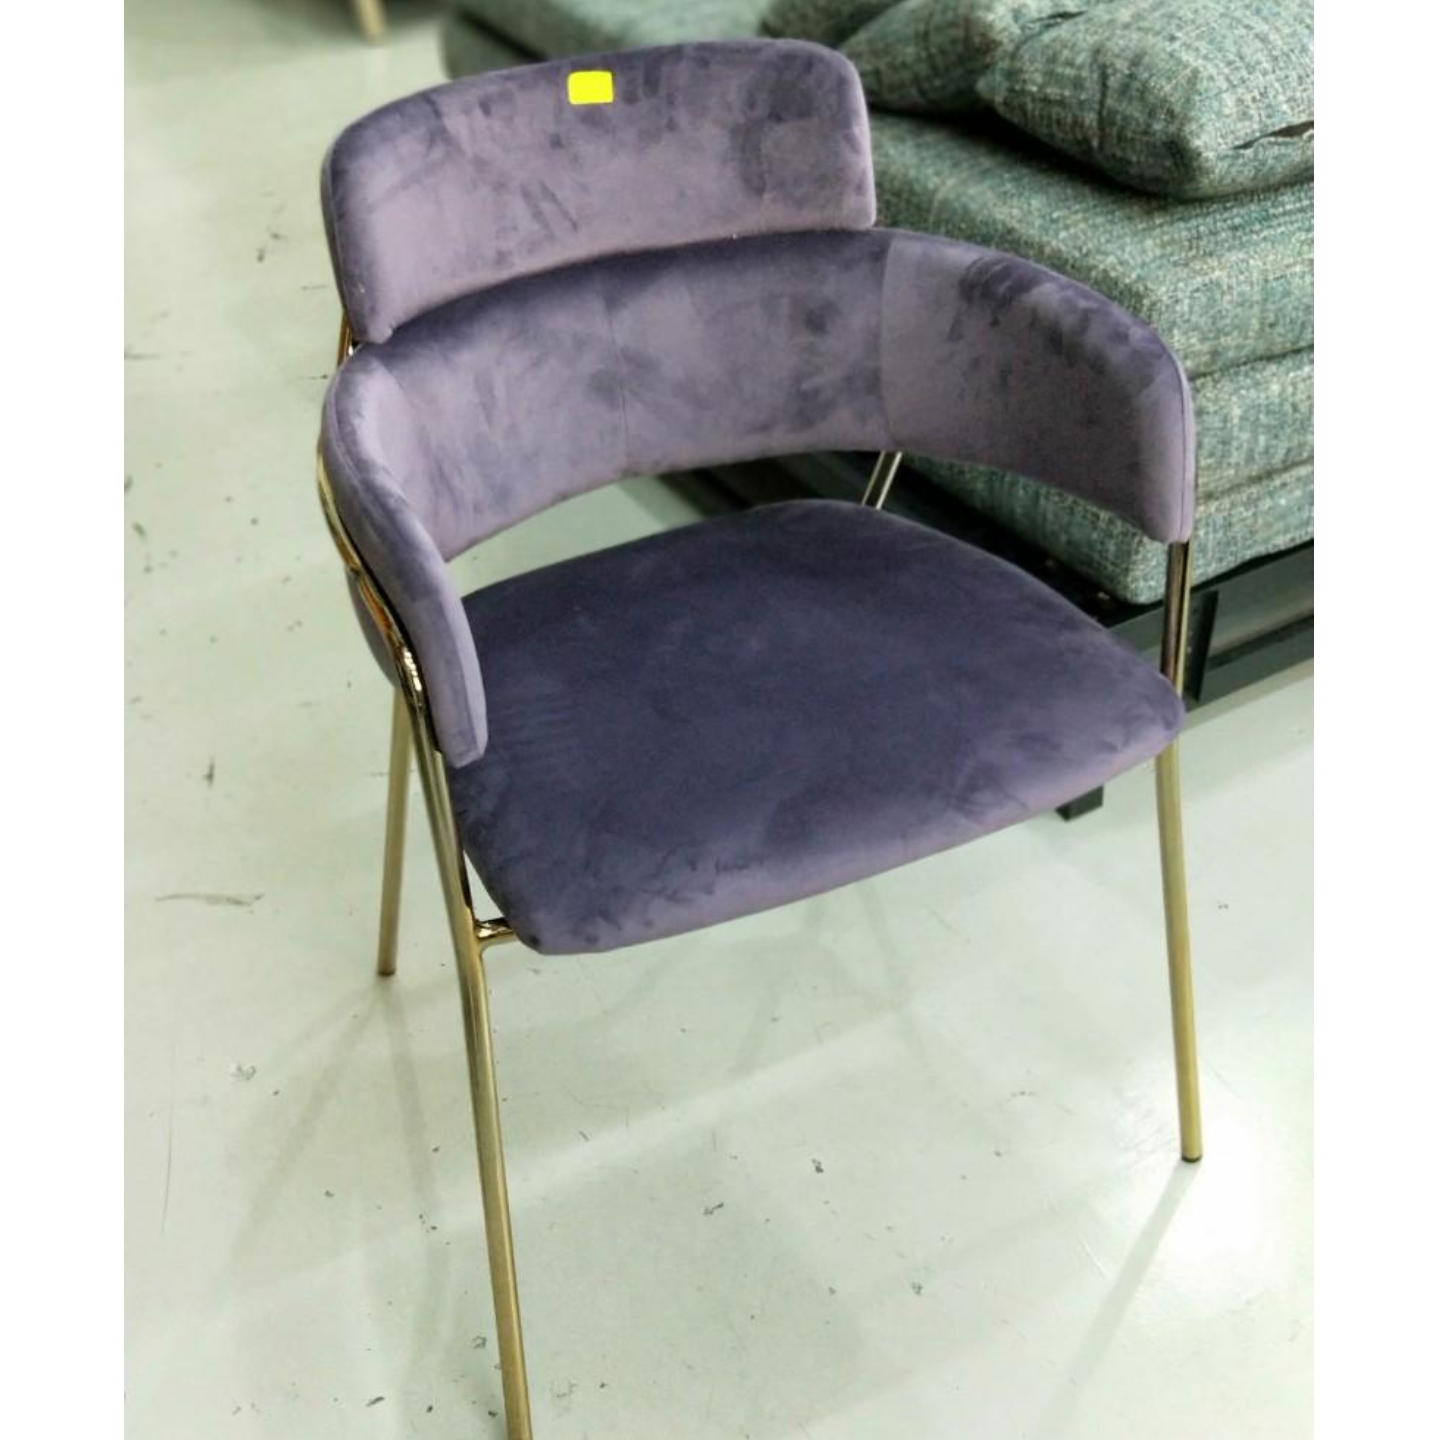 EMMEX Chair in PURPLE with GOLD LEGS